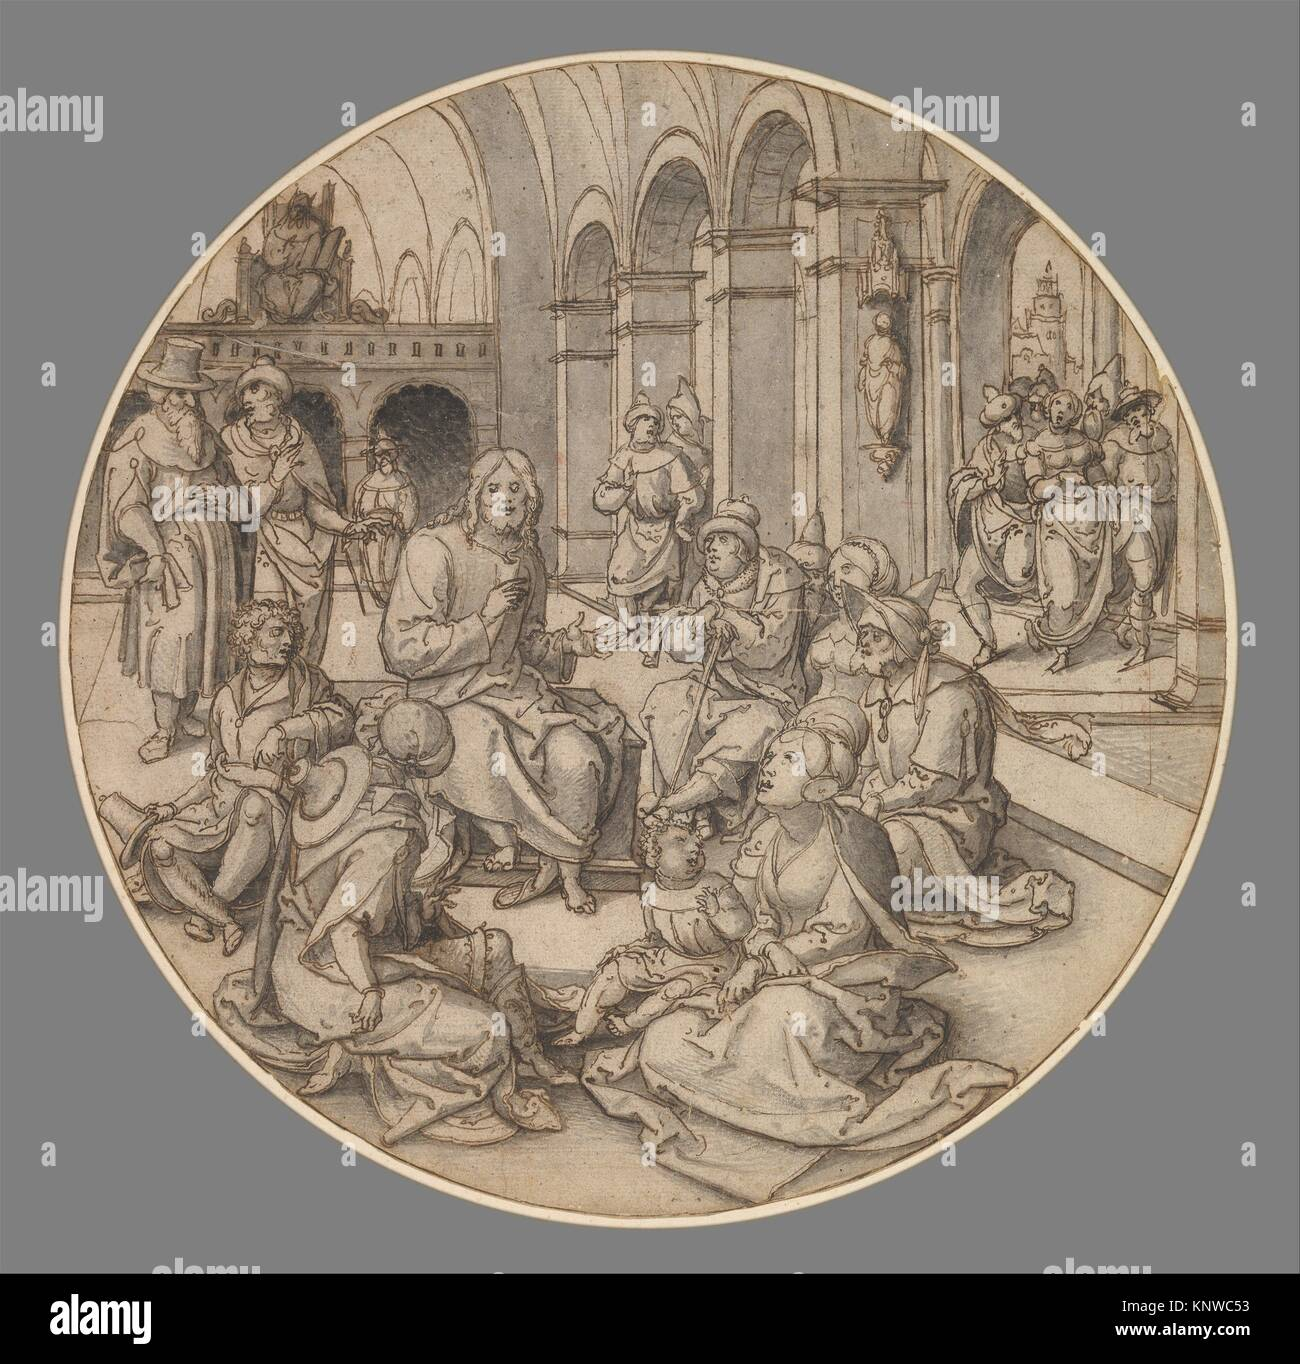 Christ Preaching in the Synagogue, with the Pharisees Bringing the Woman Taken in Adultery. Artist: Dirck Vellert - Stock Image